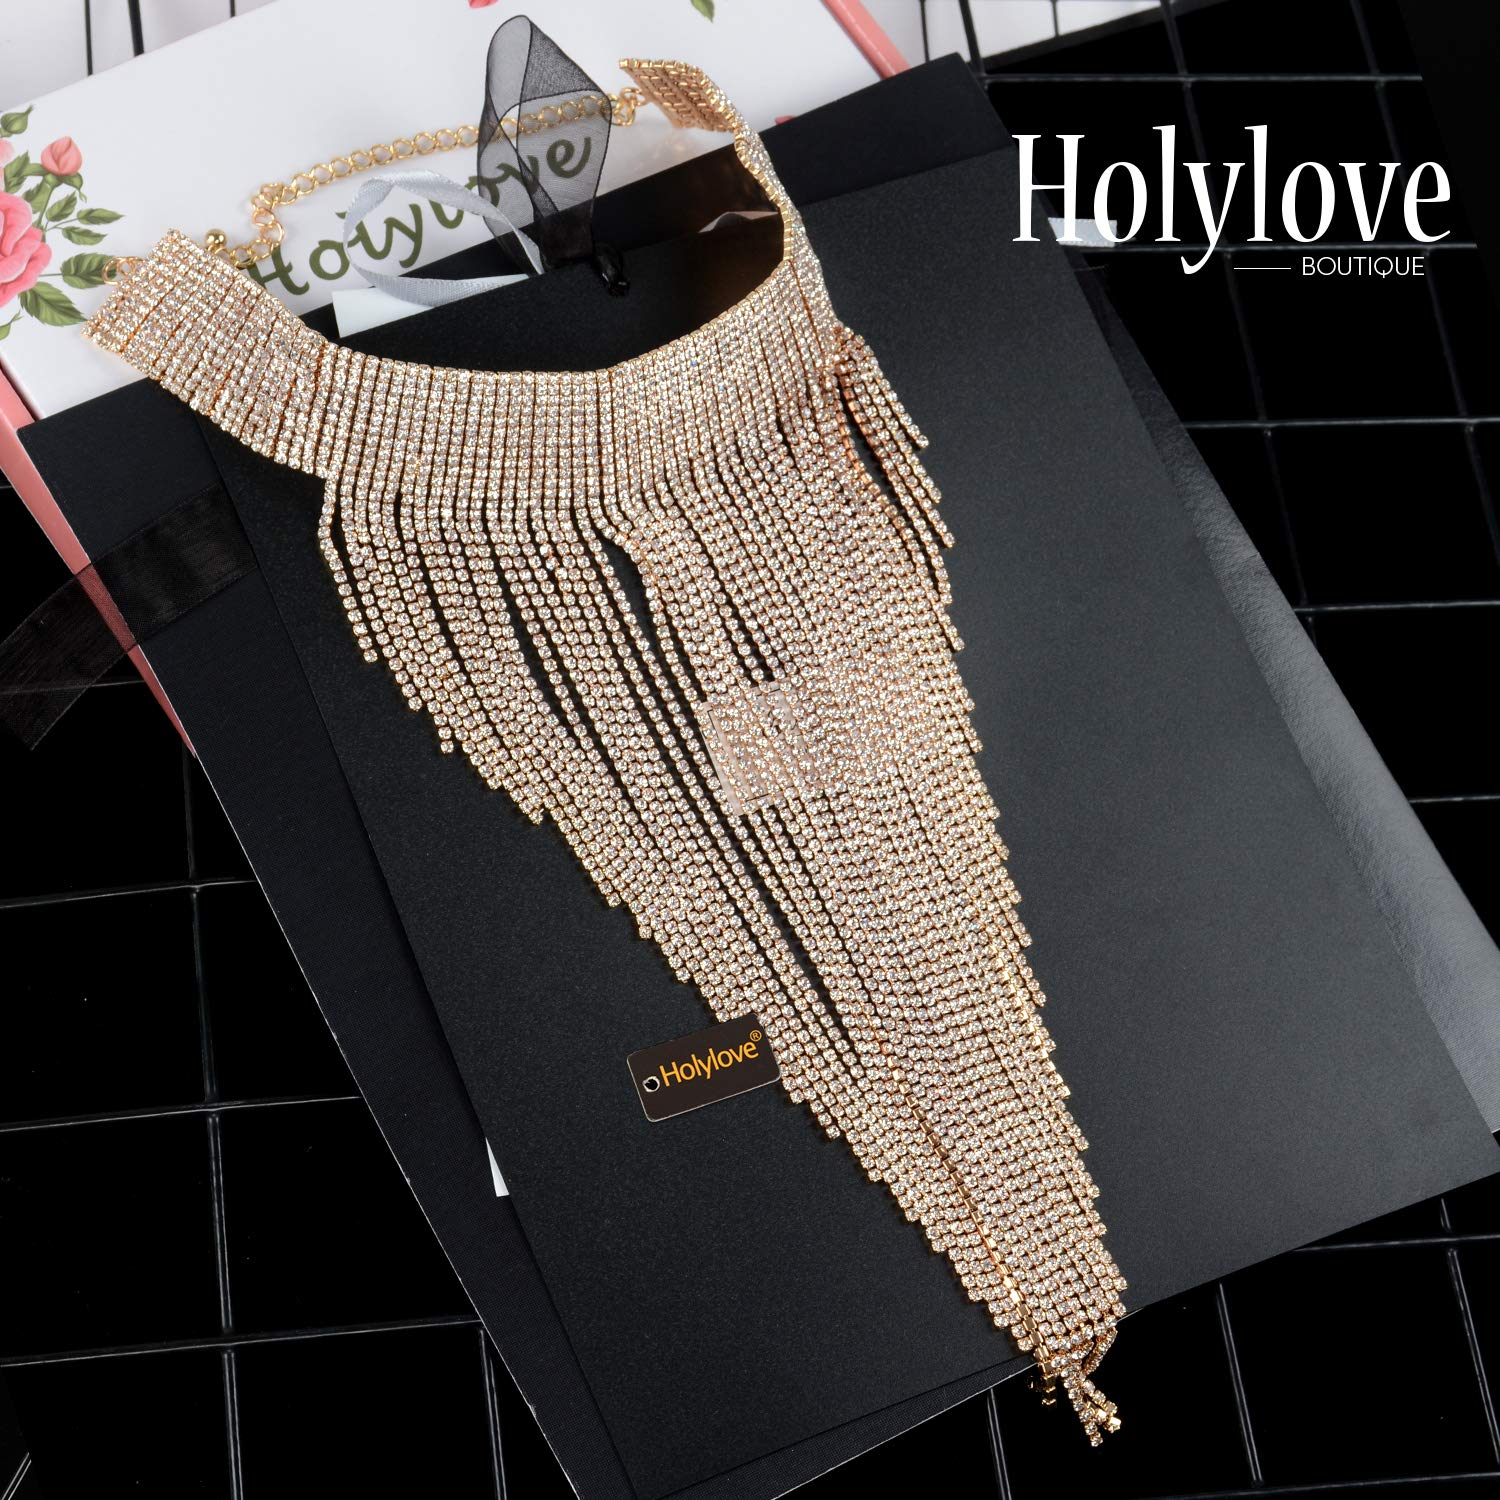 Holylove 2 Colors Tassel Collar Statement Necklace for Women Novelty Fashion Jewelry 1 Set with Gift Box (Gold-23) by Holylove (Image #6)